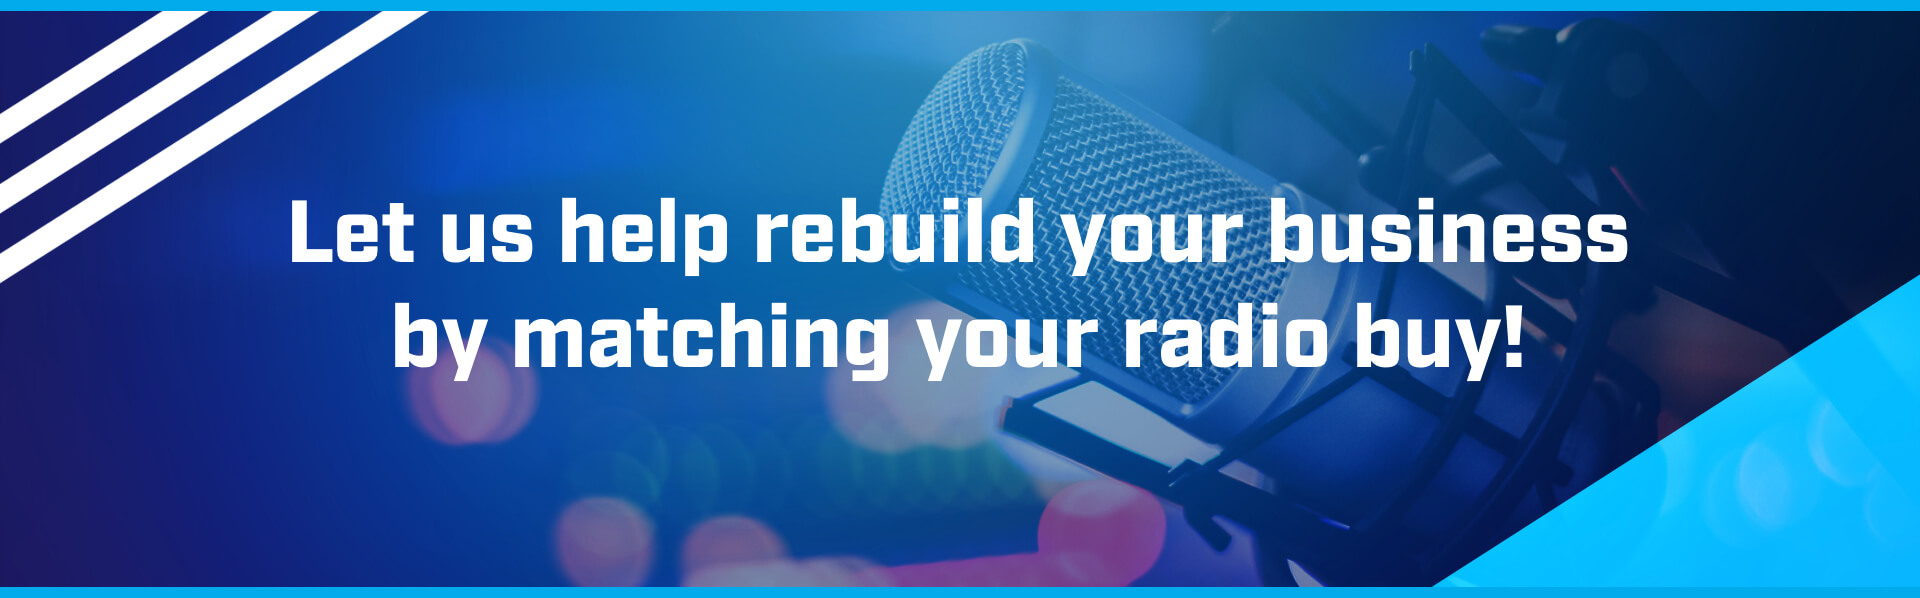 Let us help rebuild your business by matching your radio buy!